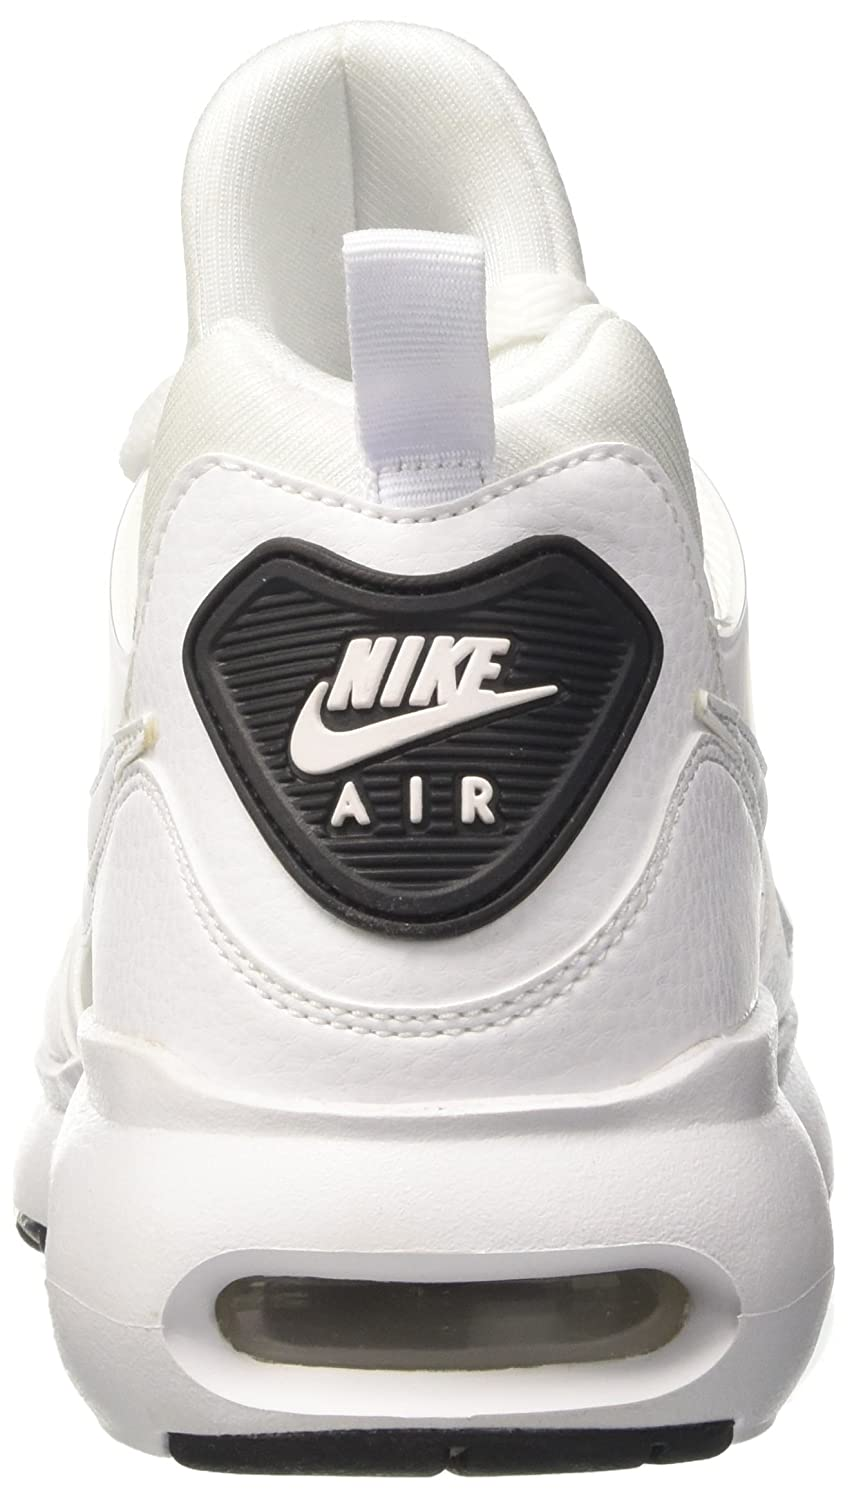 ... Shoes White Black 2017  New Photos Amazon.com NIKE Air Max Prime Mens  Style 876068 Mens 876068-100 ... 340f67b77